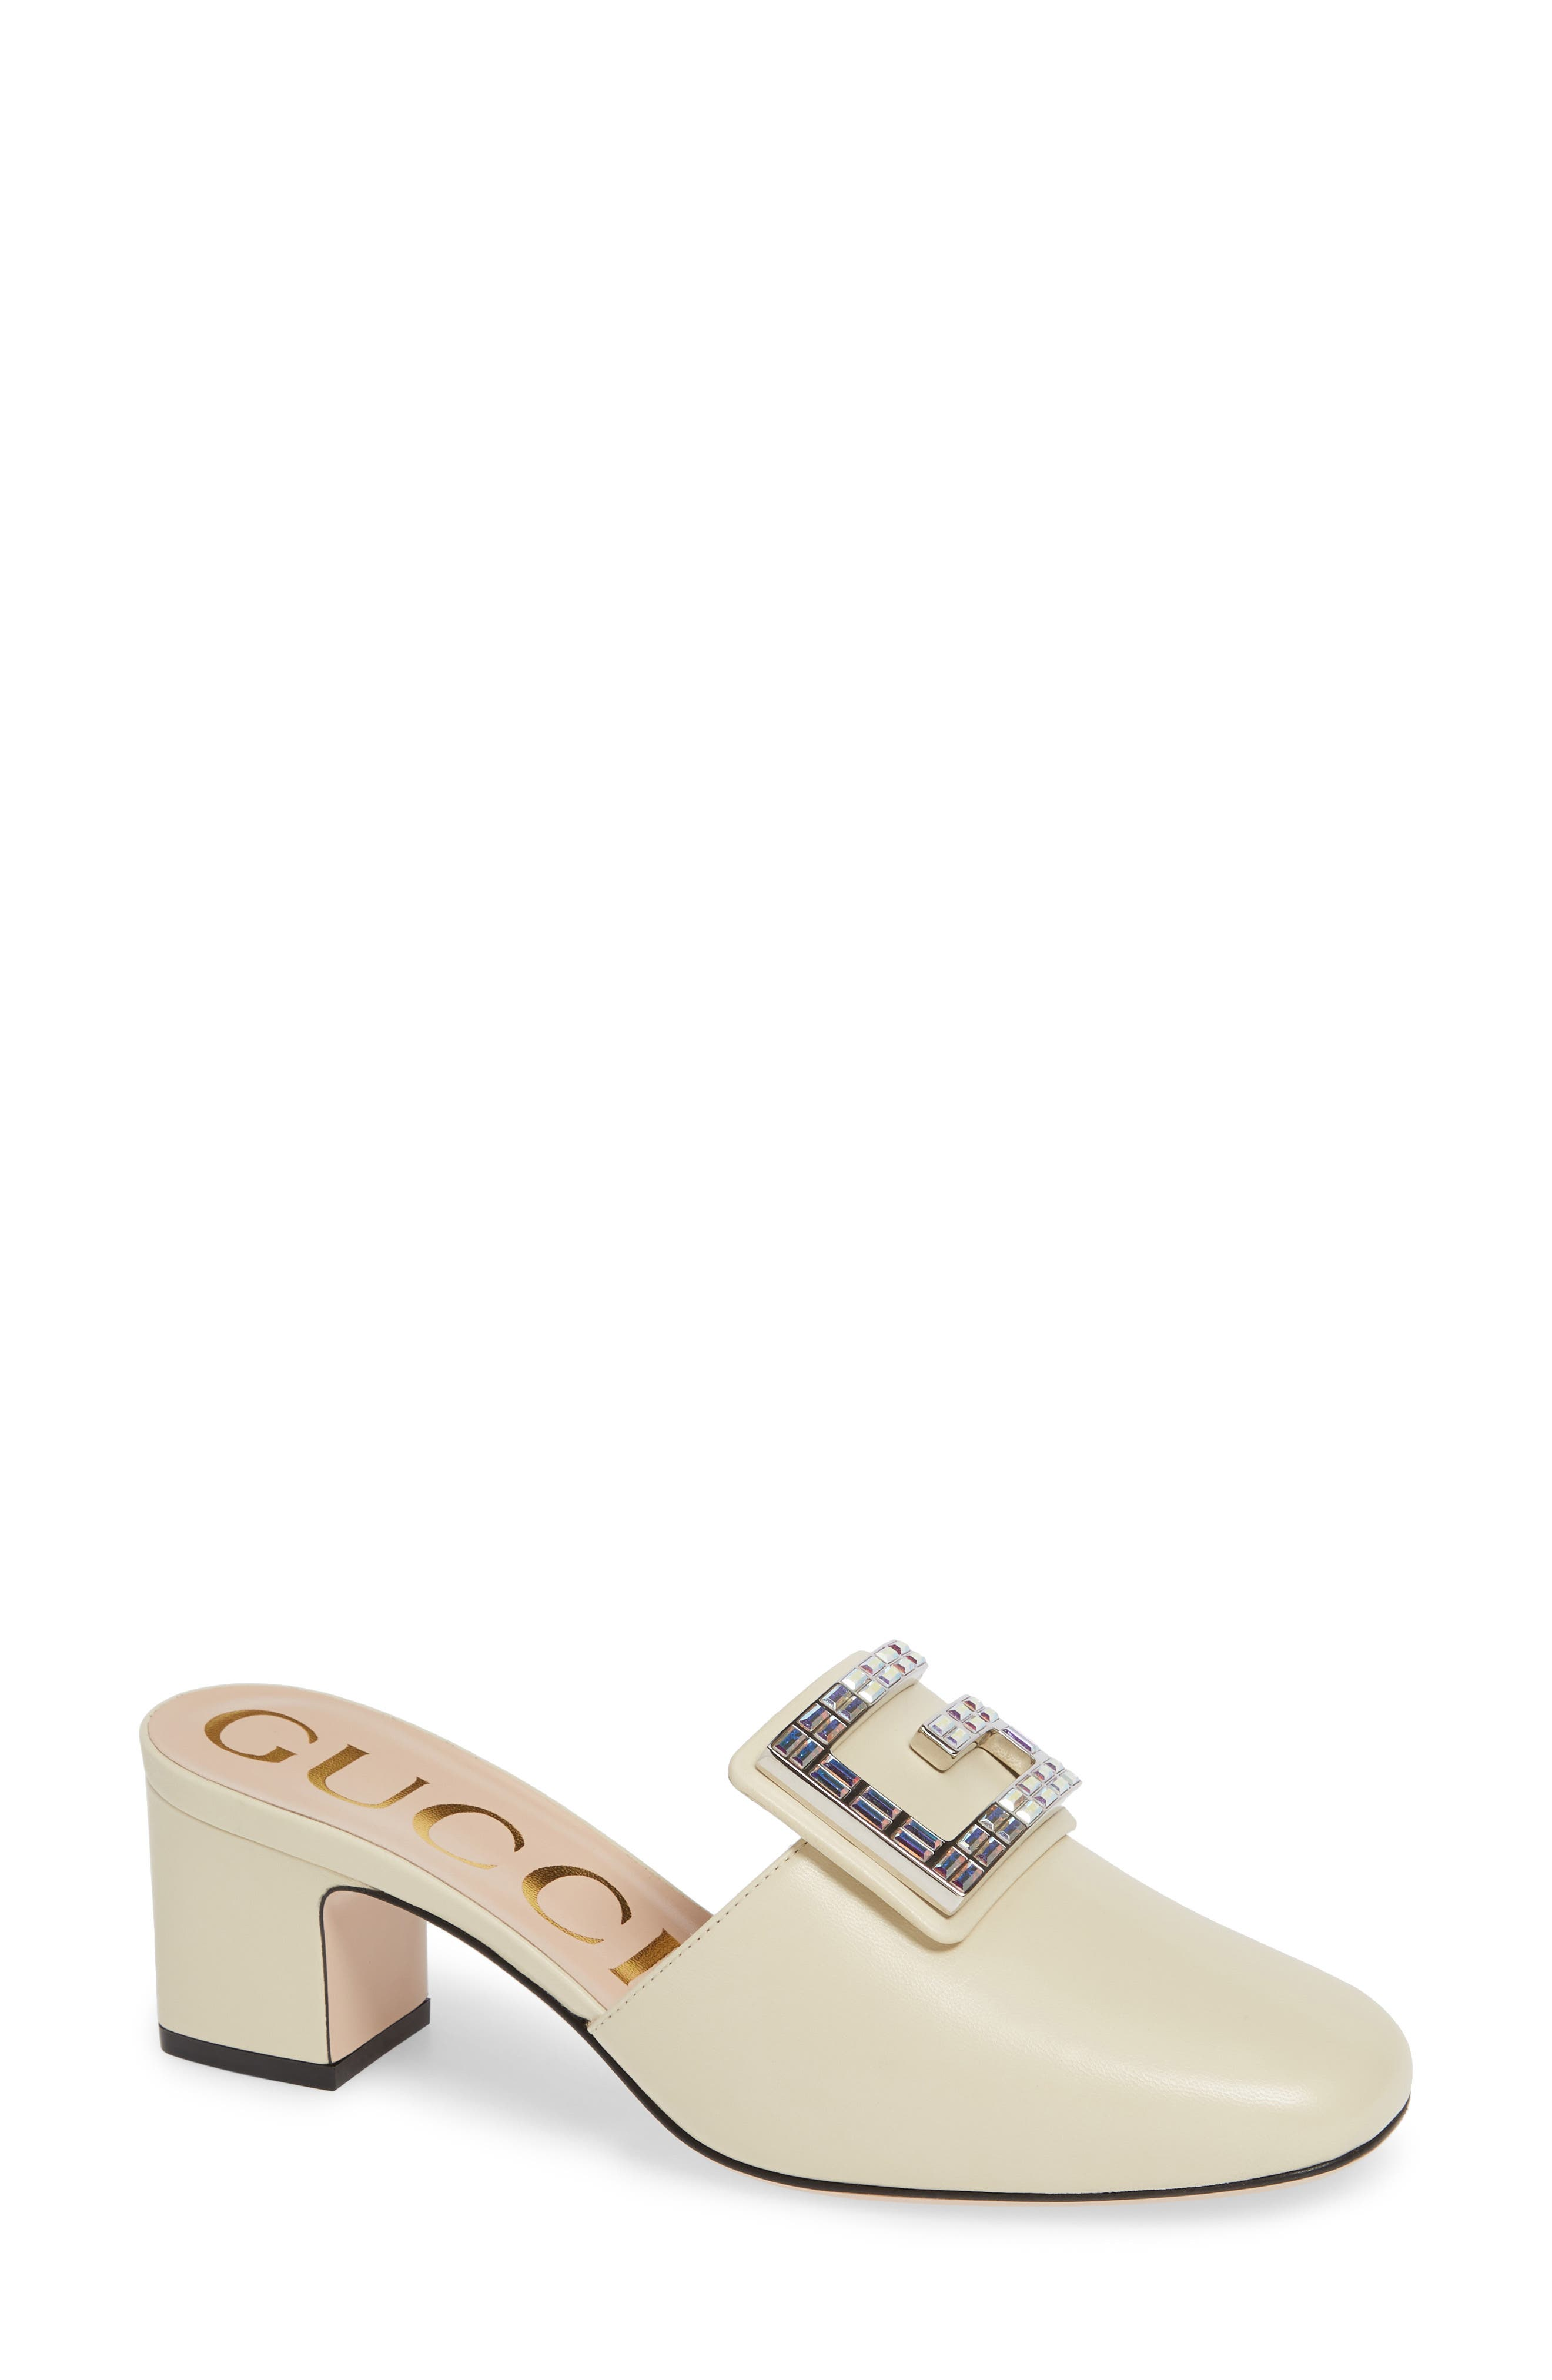 Madelyn 55Mm Leather Mules With Square G in Vintage White Leather